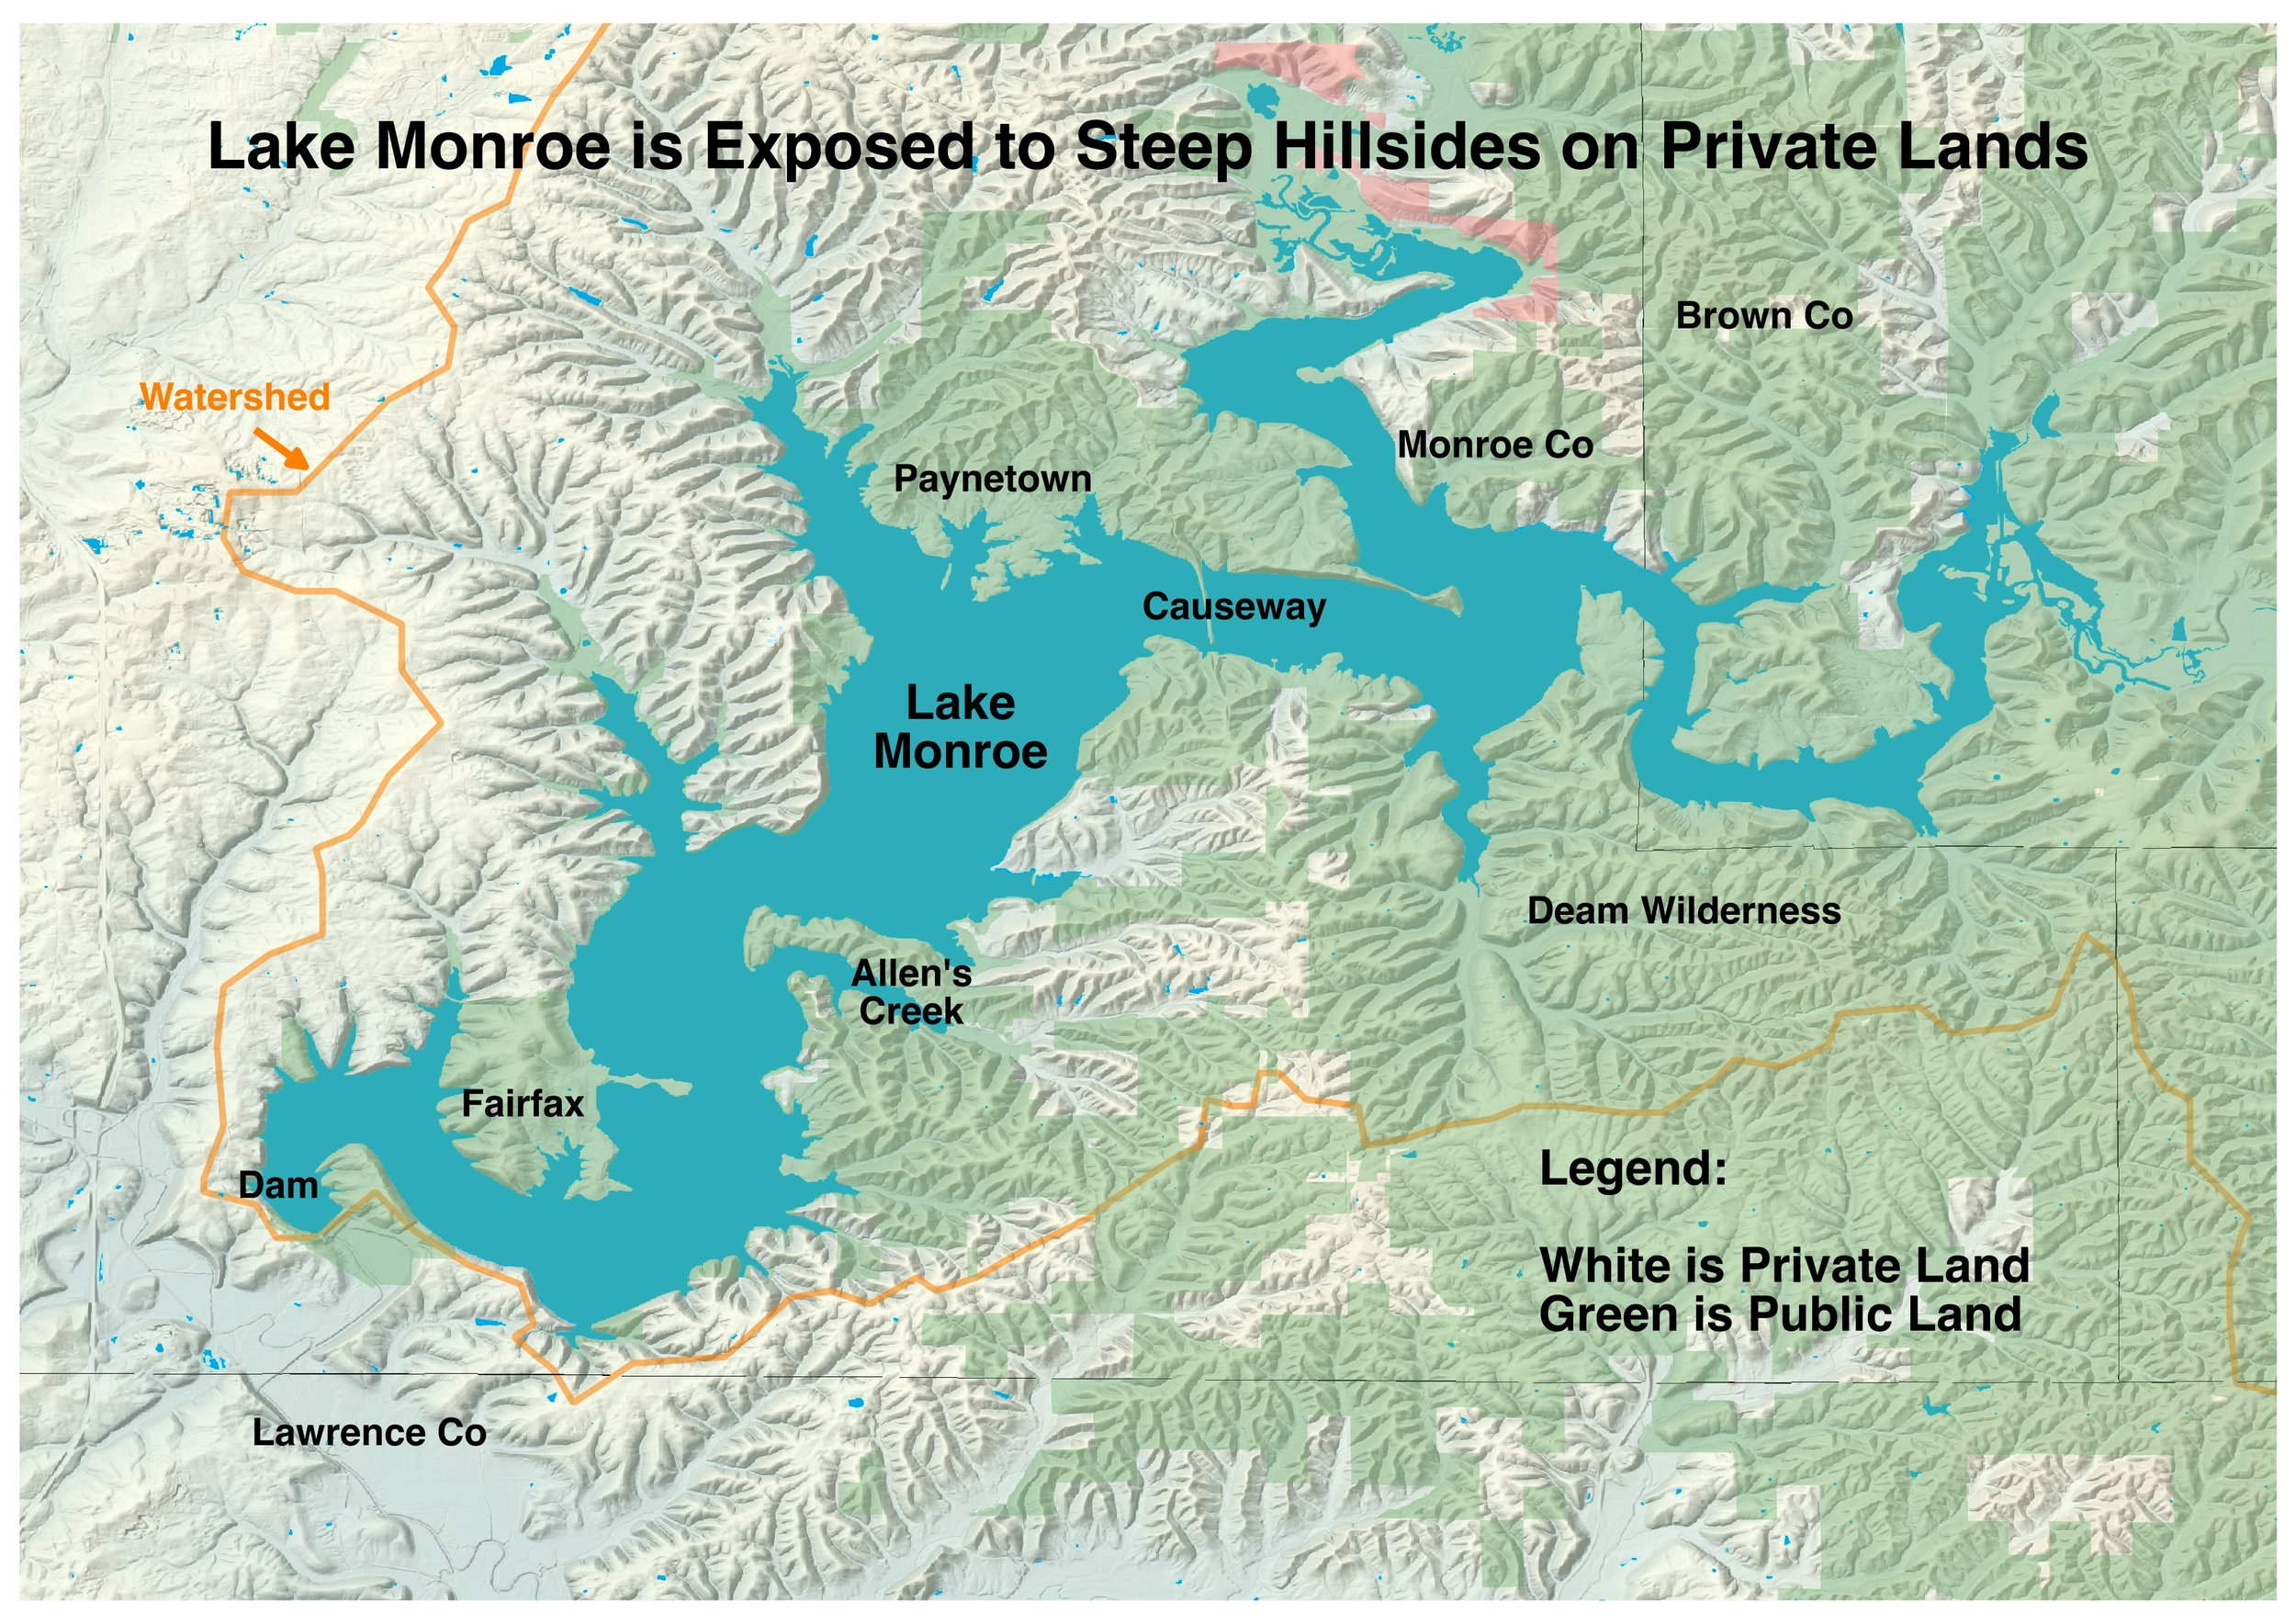 A map showing private vs. public areas in the watershed.